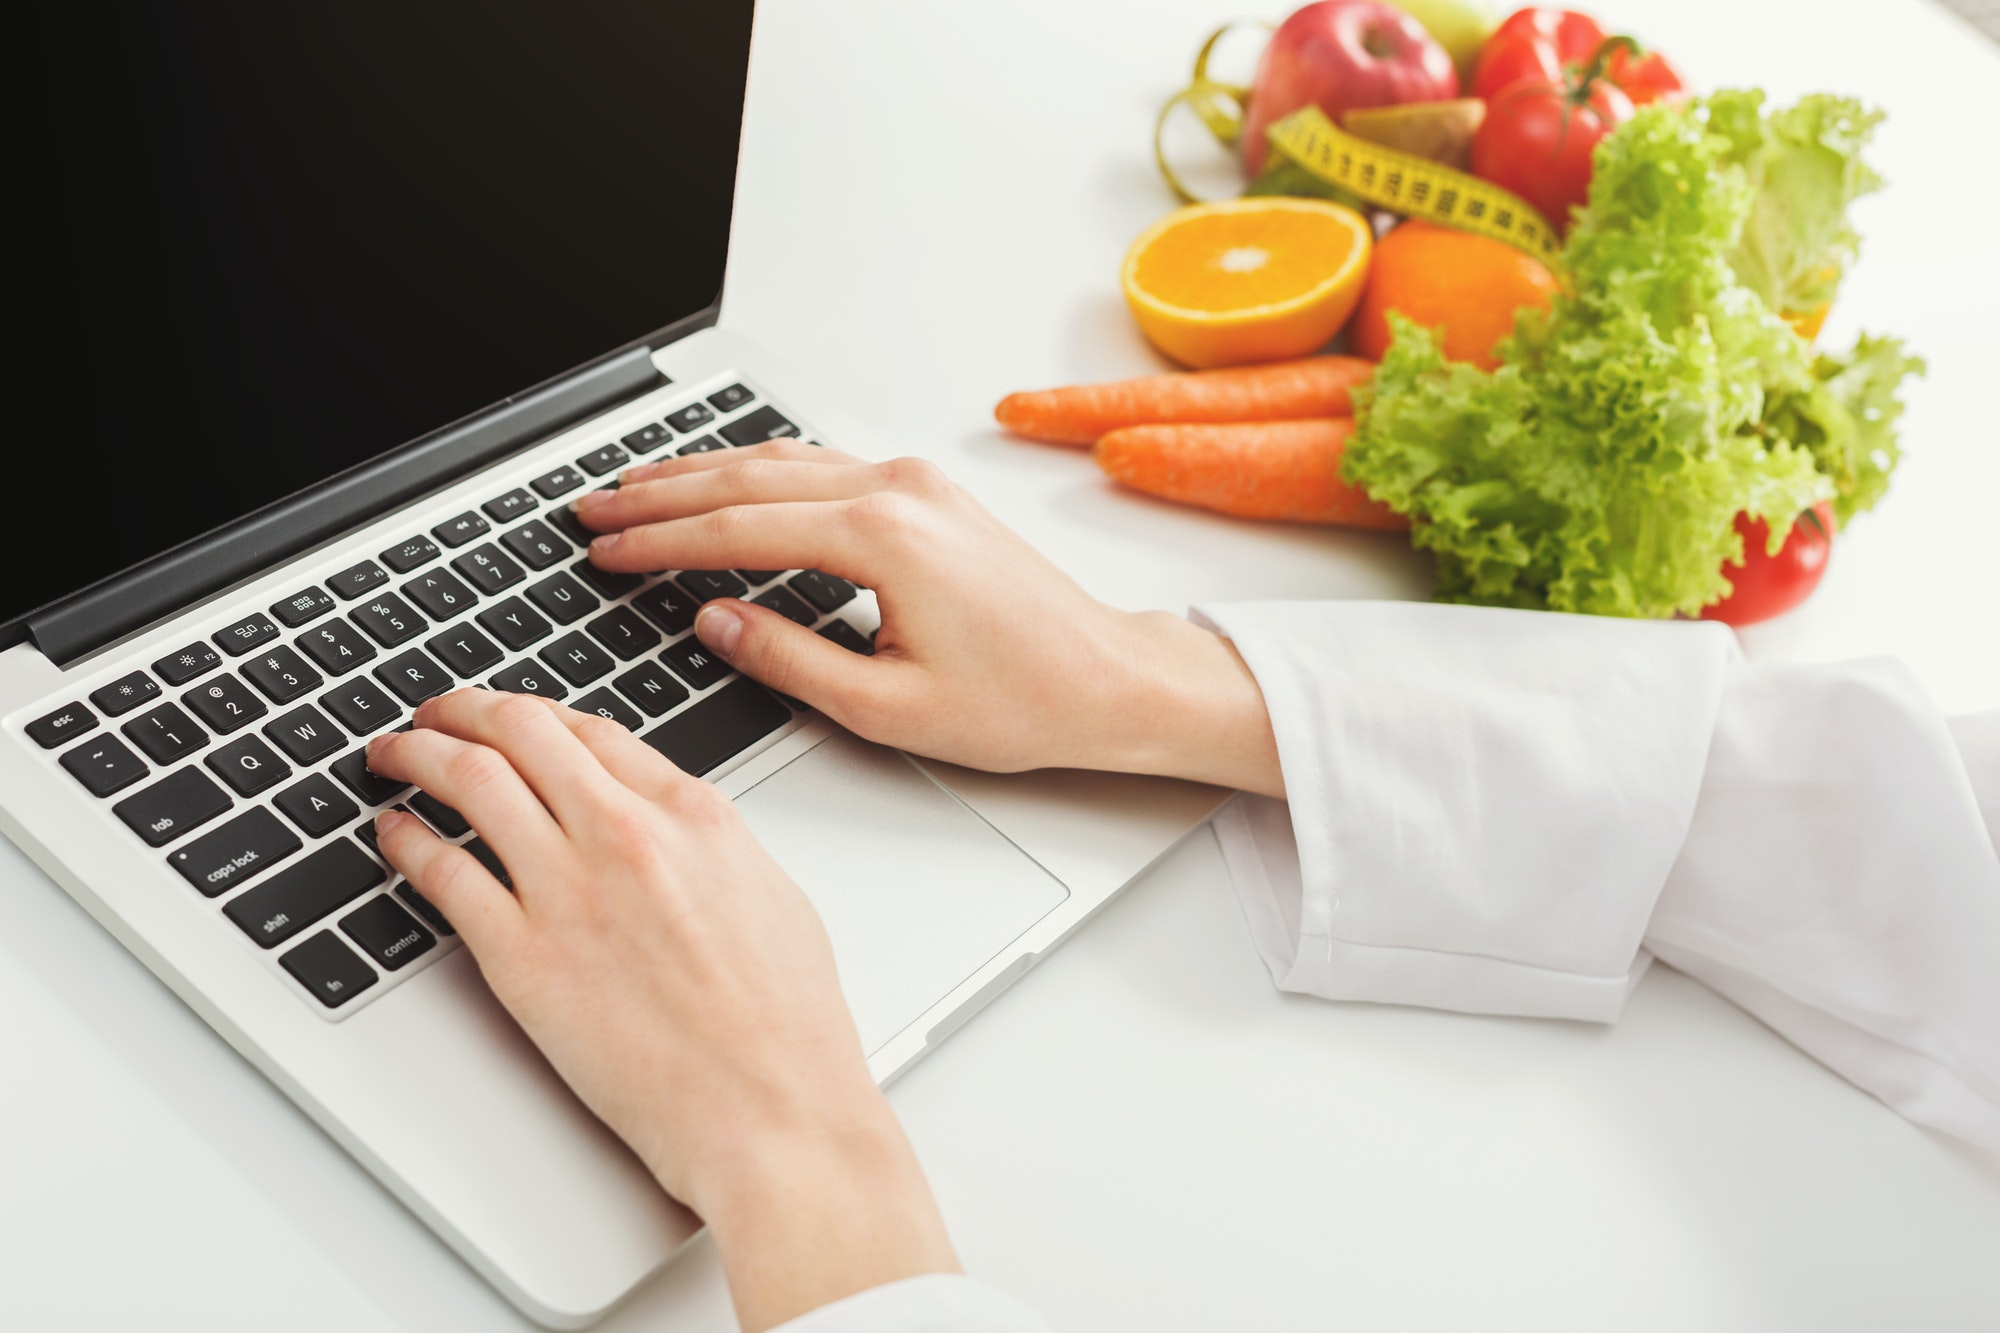 Female nutritionist working on laptop